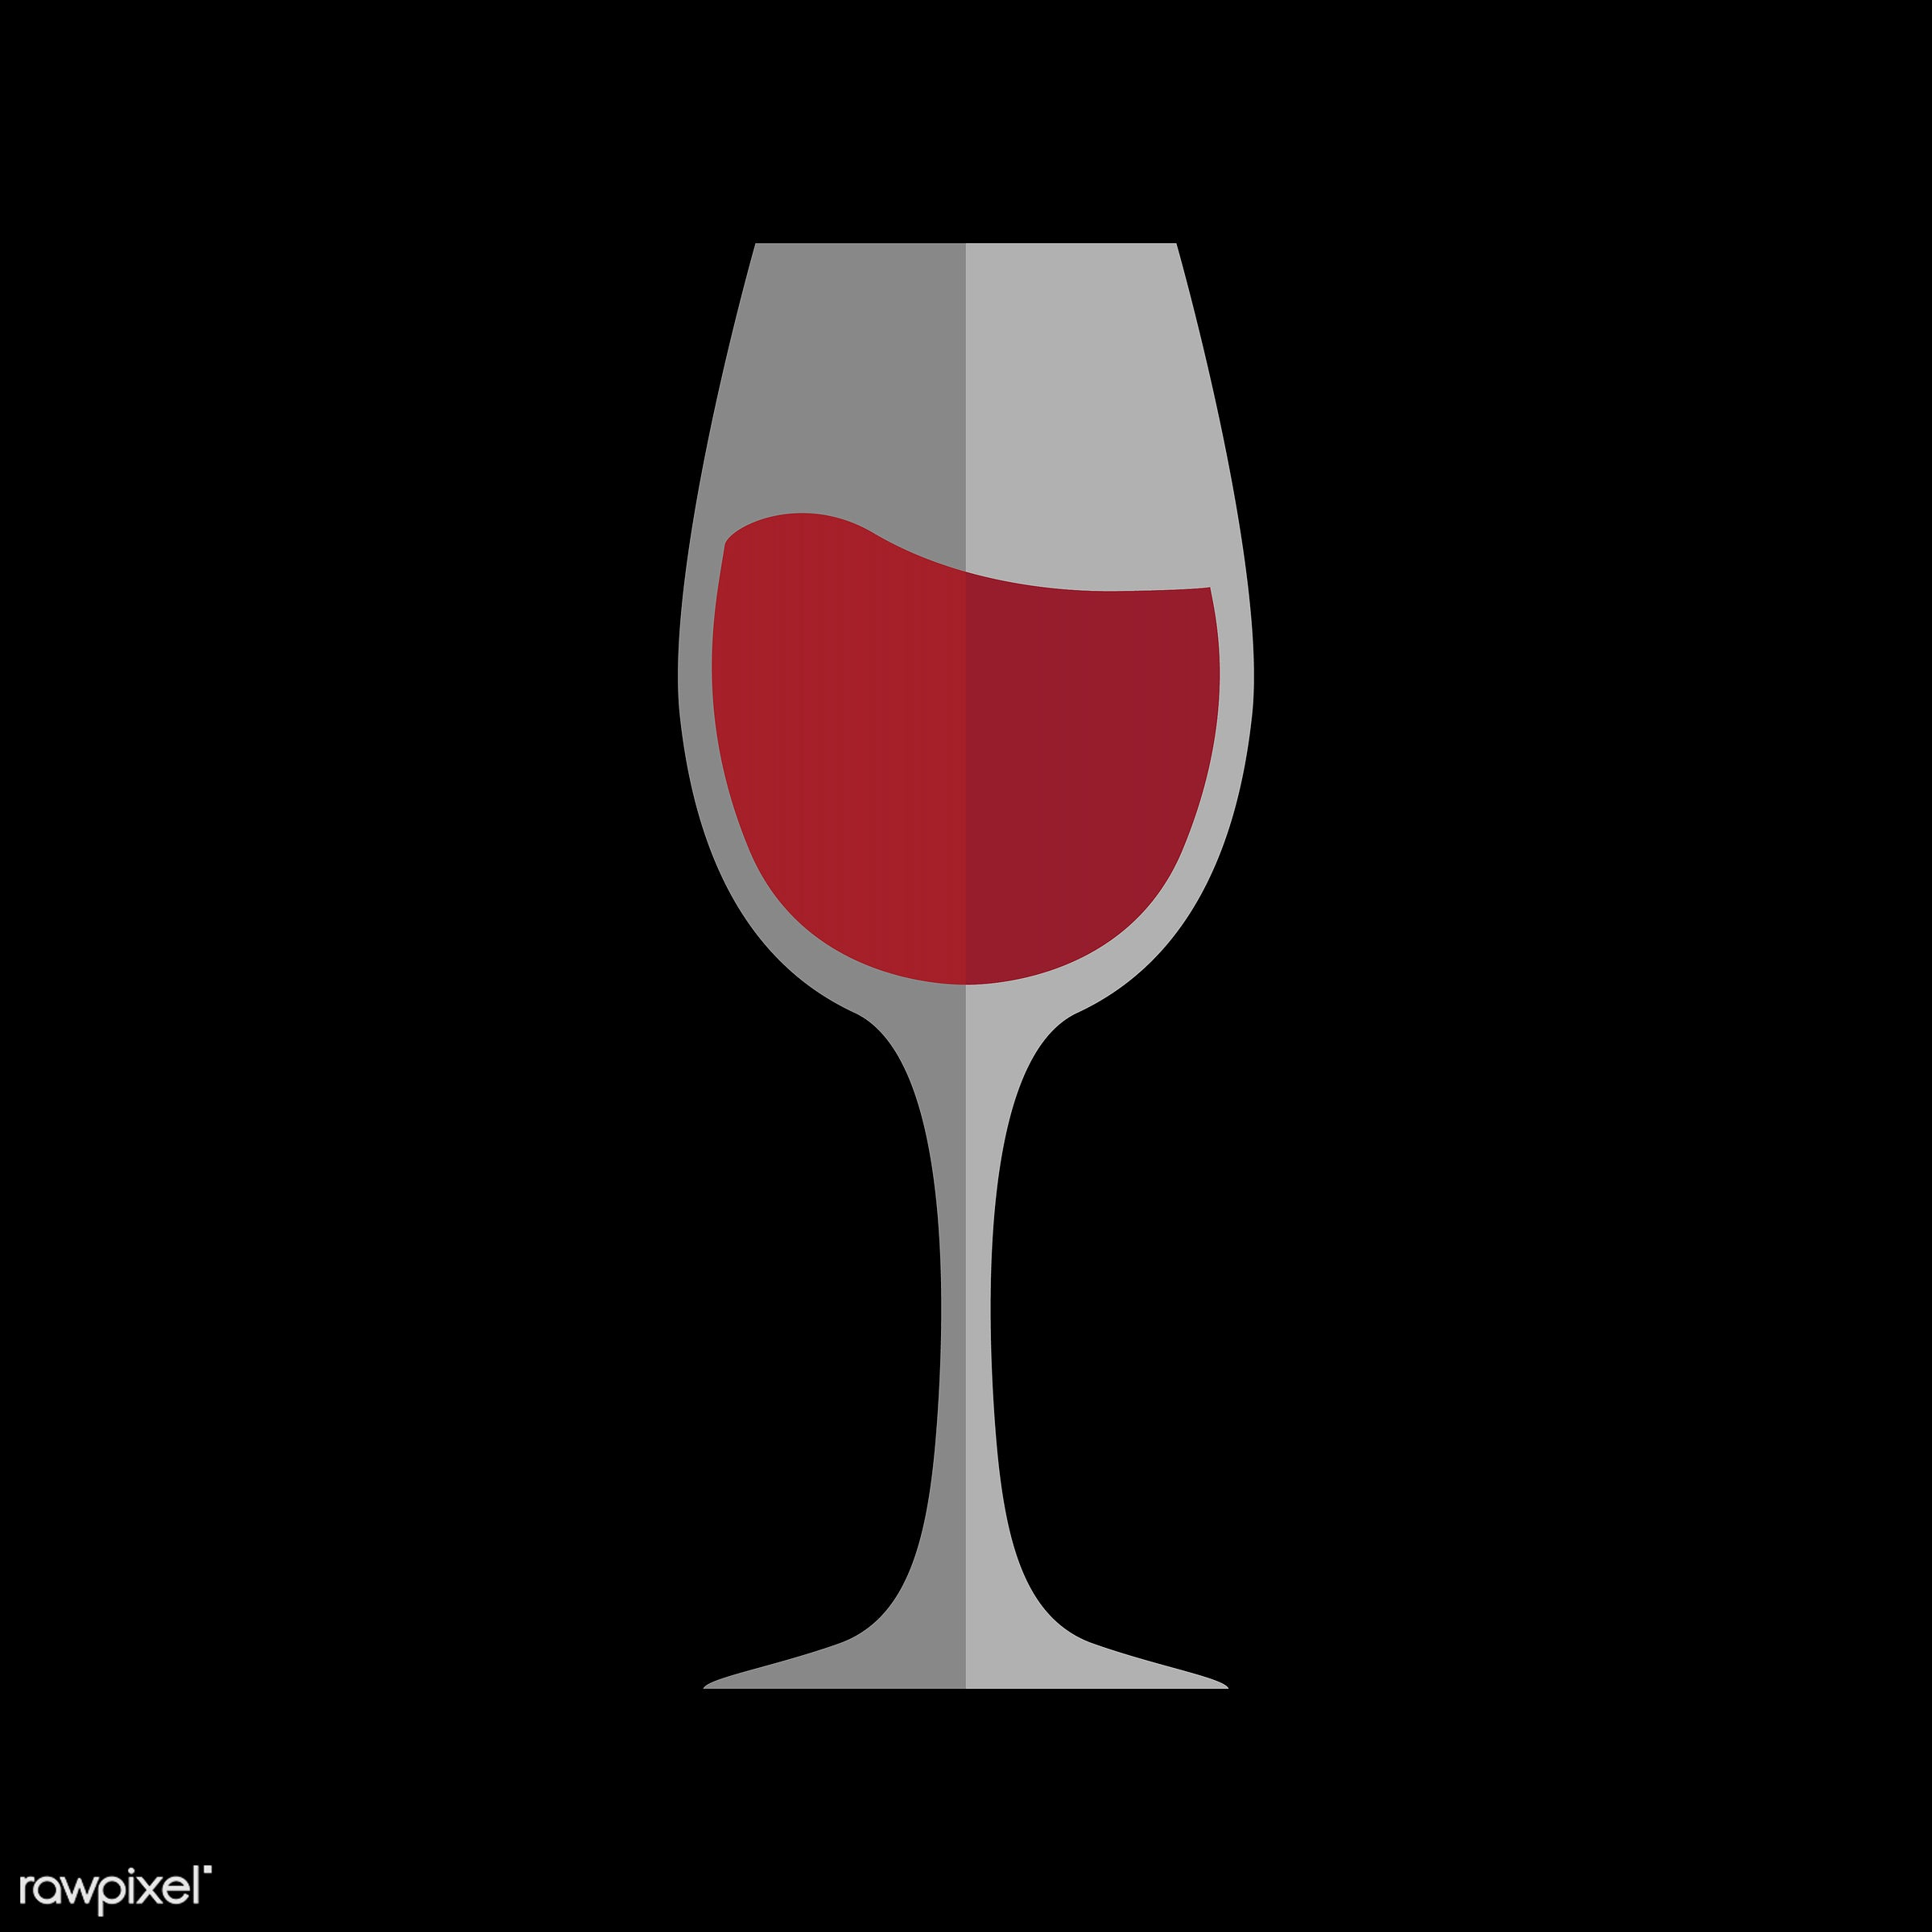 vector, graphic, illustration, icon, symbol, colorful, cute, drink, beverage, water, red wine, wine, wine glass, red,...